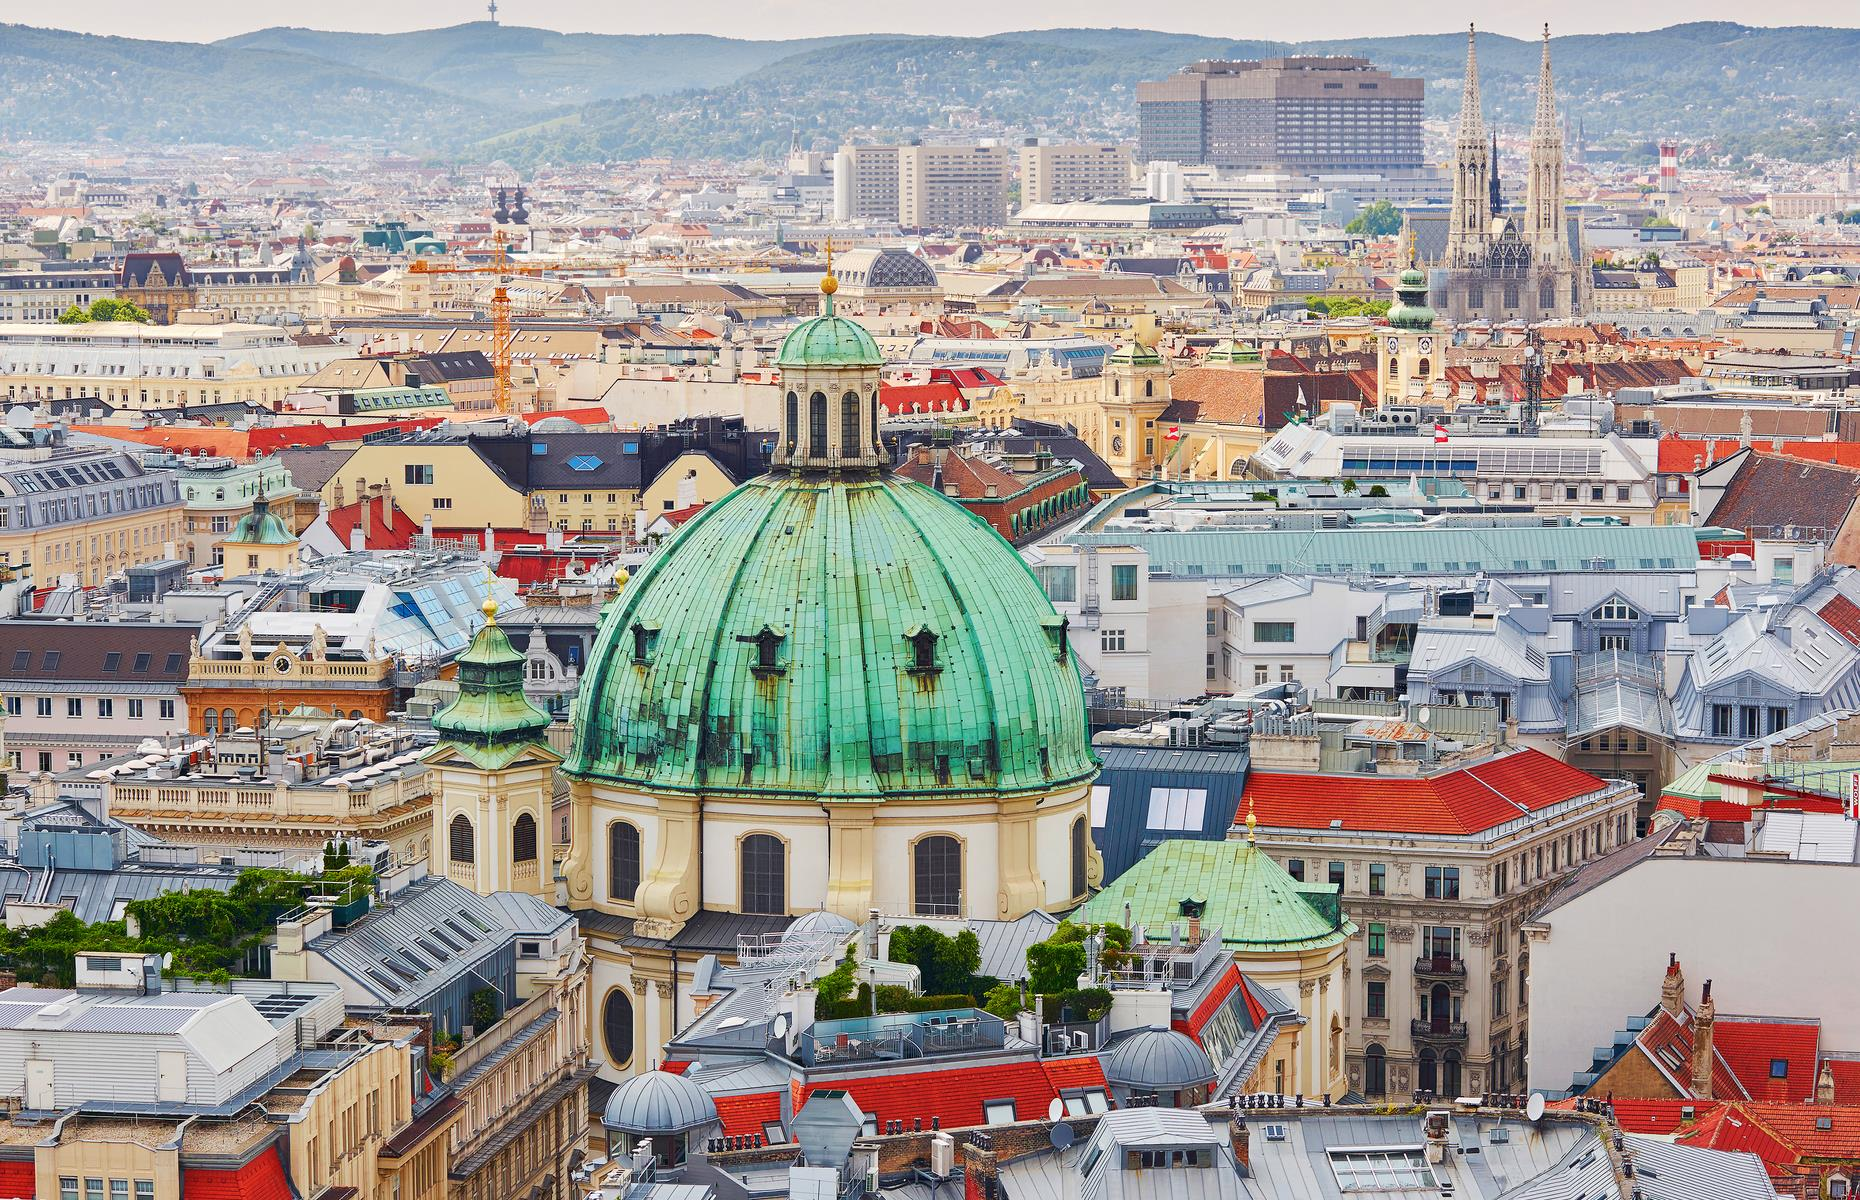 "Slide 4 of 53: With its baroque mansions and gardens, grand monuments, Ringstrasse and medieval core, Vienna's city center received UNESCO status in 2001. But with a new high-rise project threatening to change the city's skyline, its historic center was placed on the danger list in 2017. UNESCO said: ""Vienna's continuing development requires a very sensitive approach that takes into account the attributes that sustain the outstanding universal value of the property."""